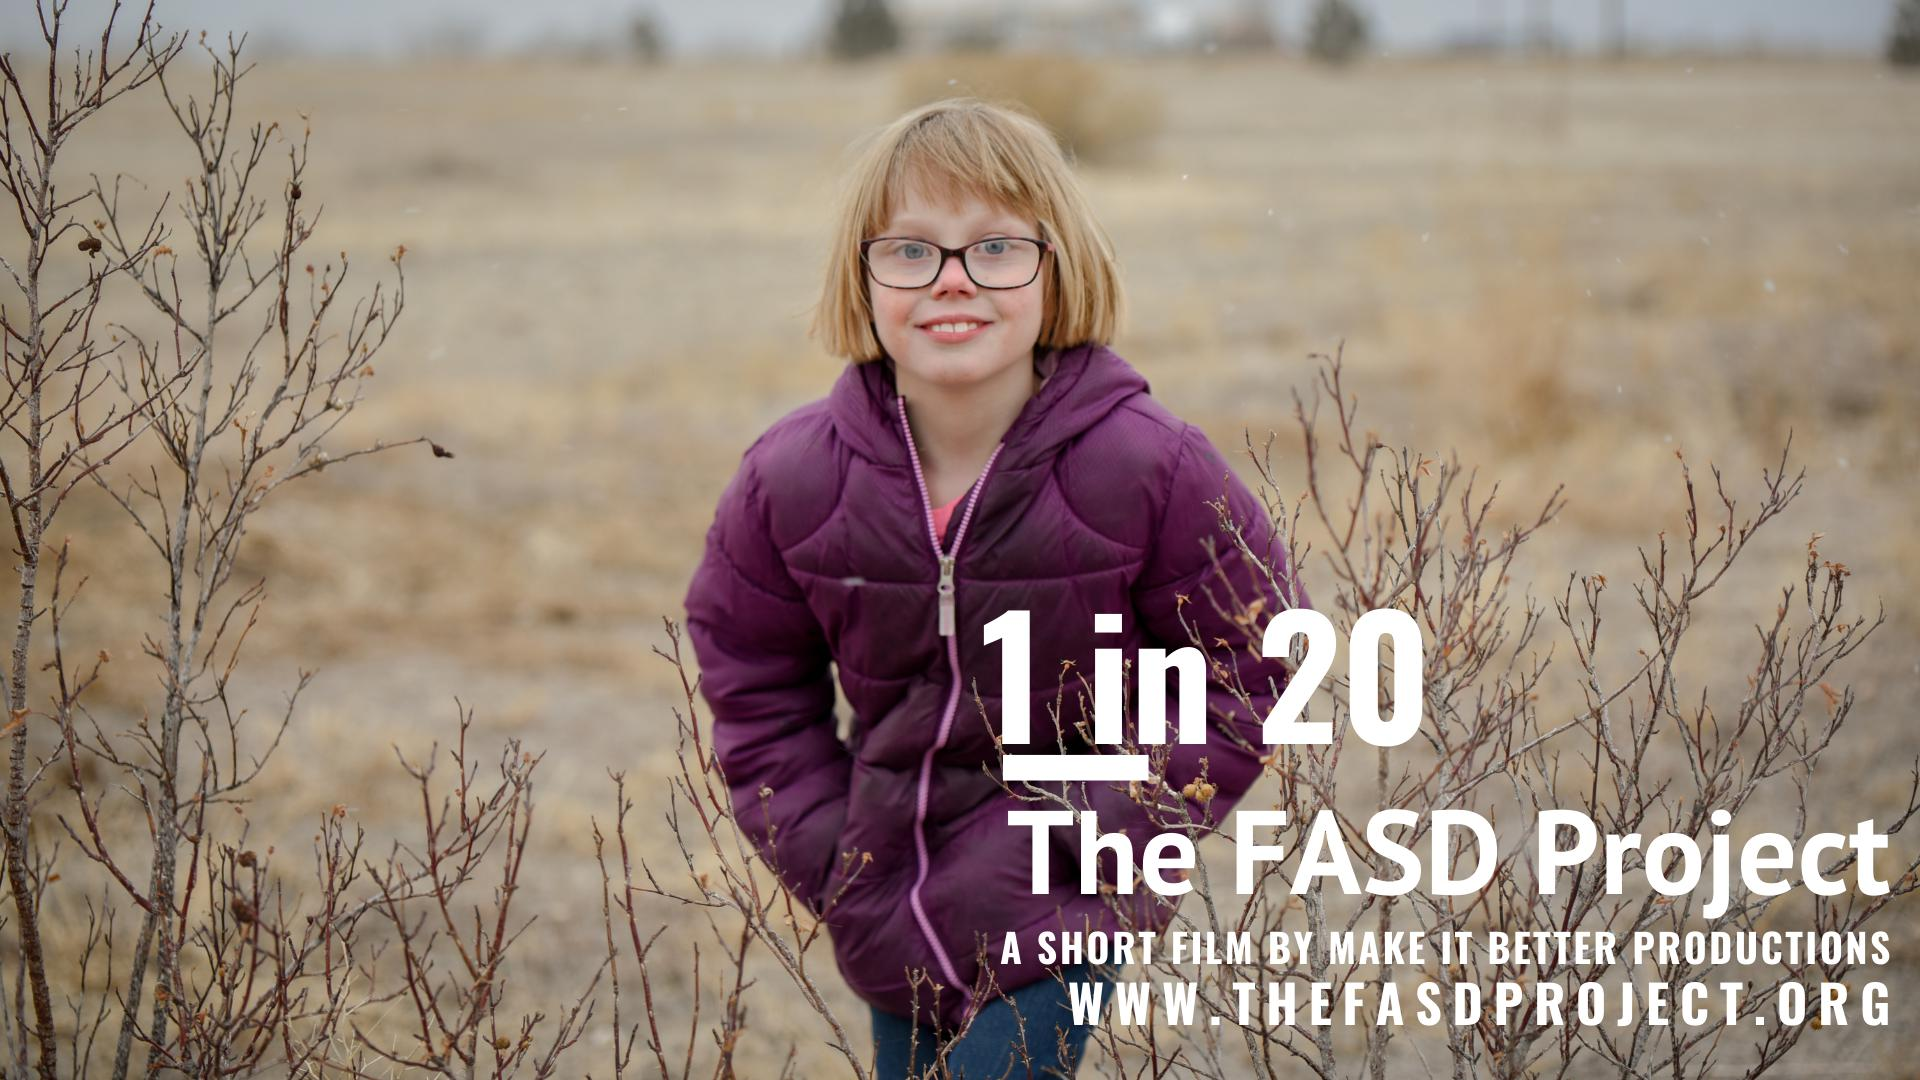 The FASD Project